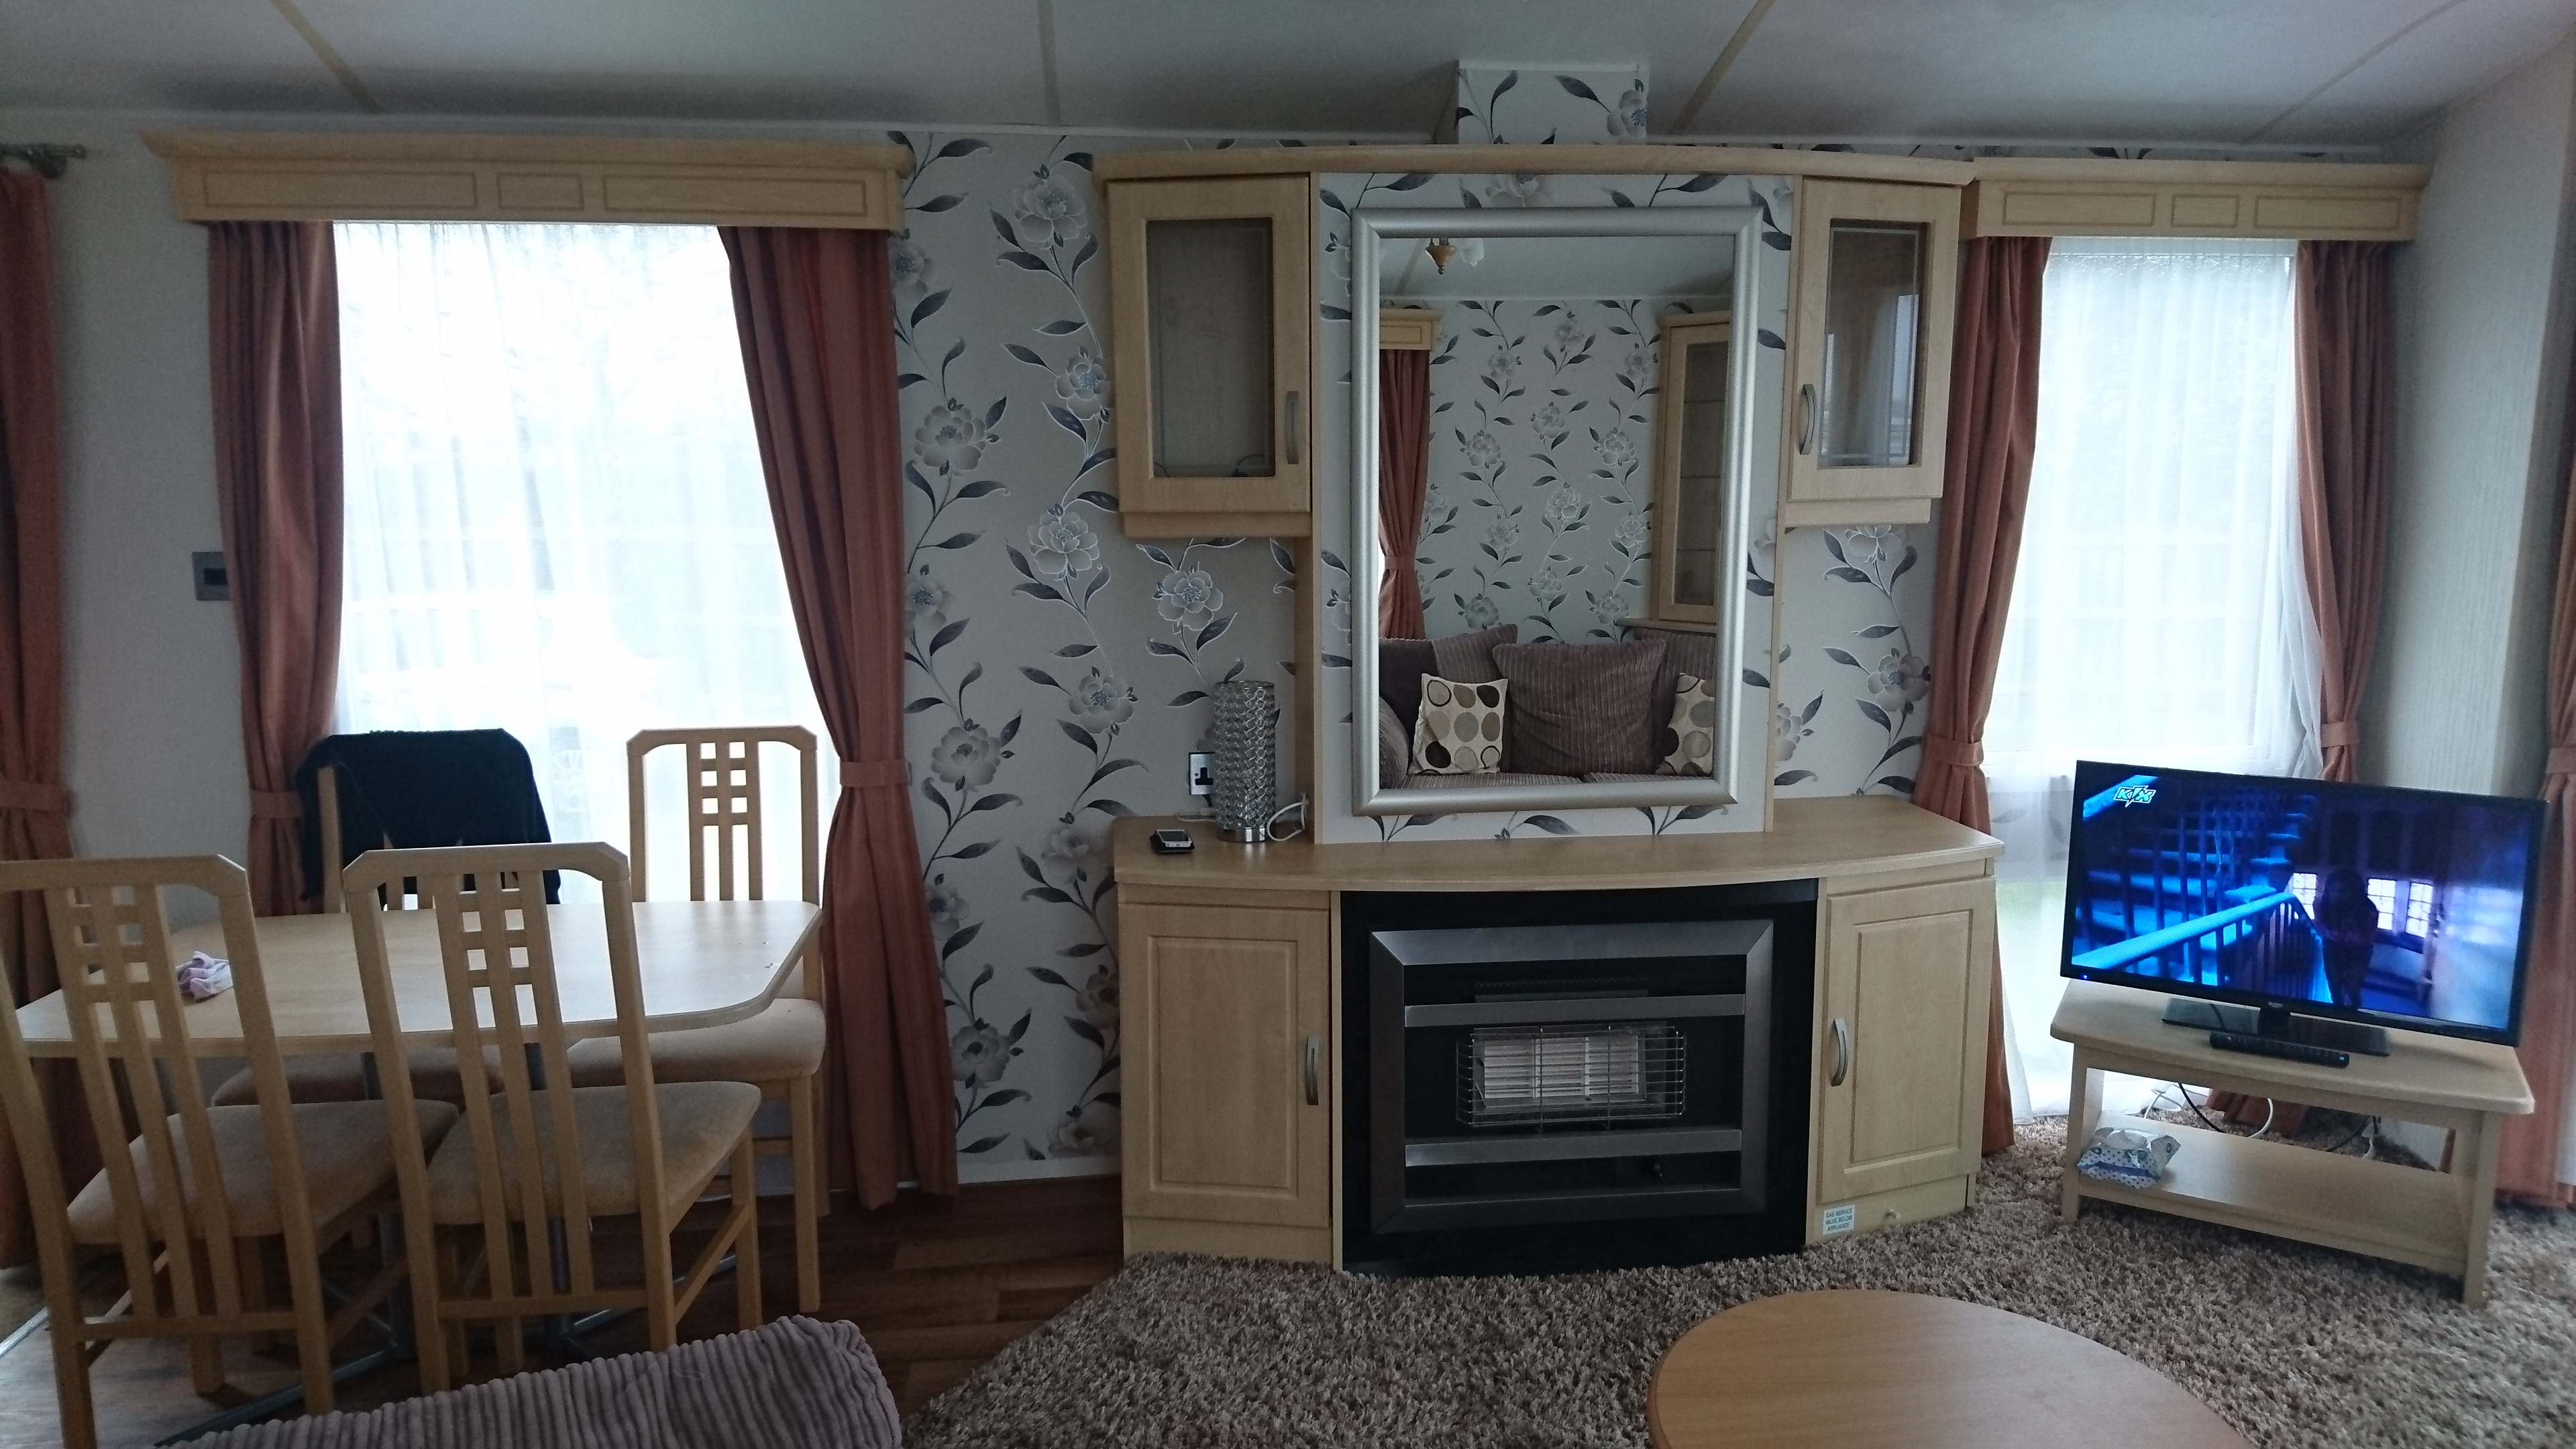 *116* Withensea Sands Park, Withernsea, East Yorkshire